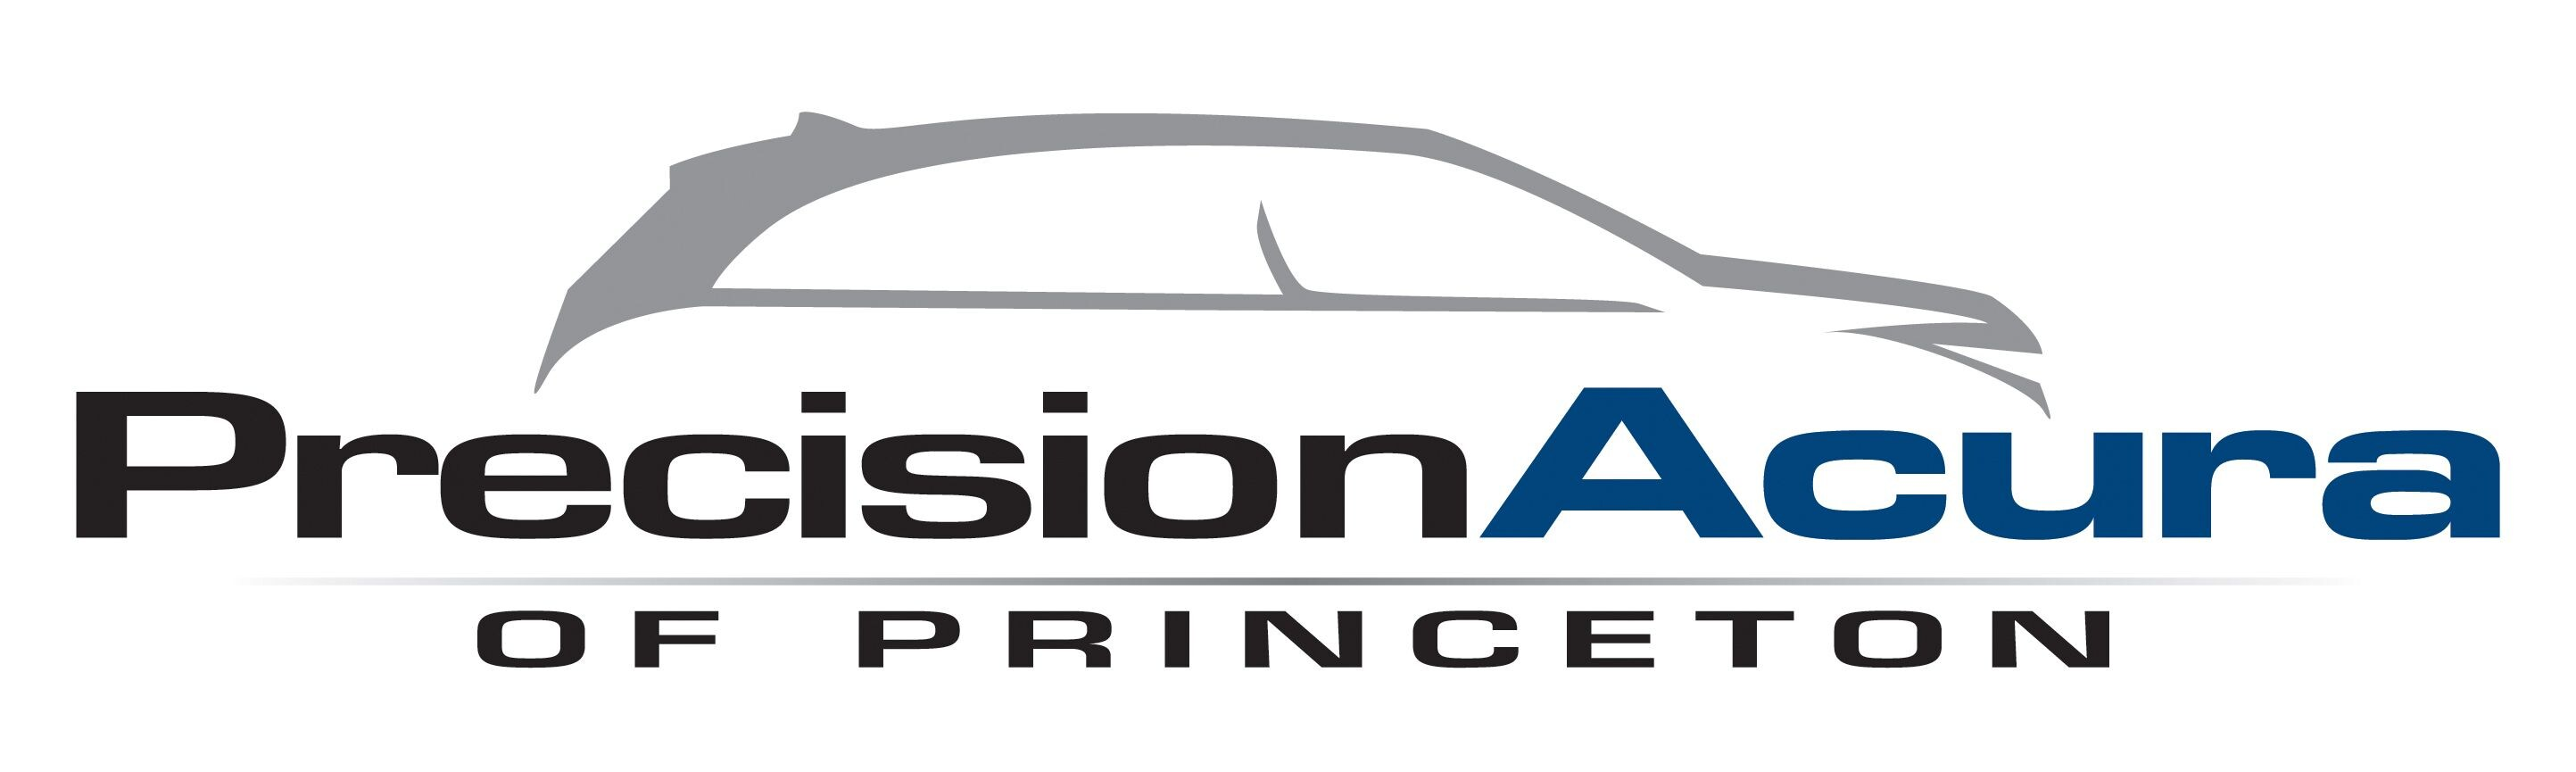 Acura East Brunswick >> Why Buy From Precision Acura Of Princeton | Acura Dealer Serving Langhorne & East Brunswick